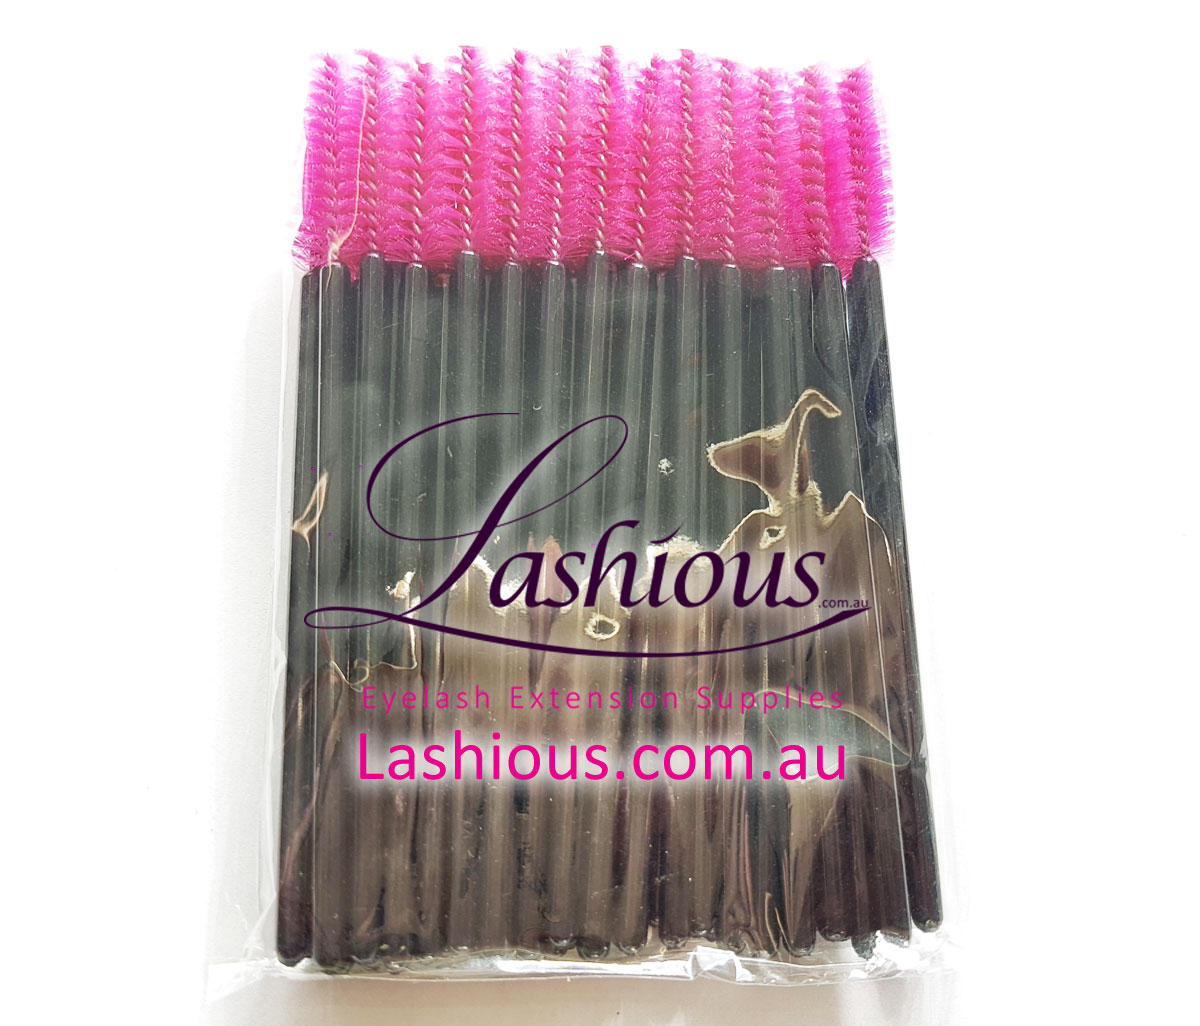 Packet of 50 mascara brush